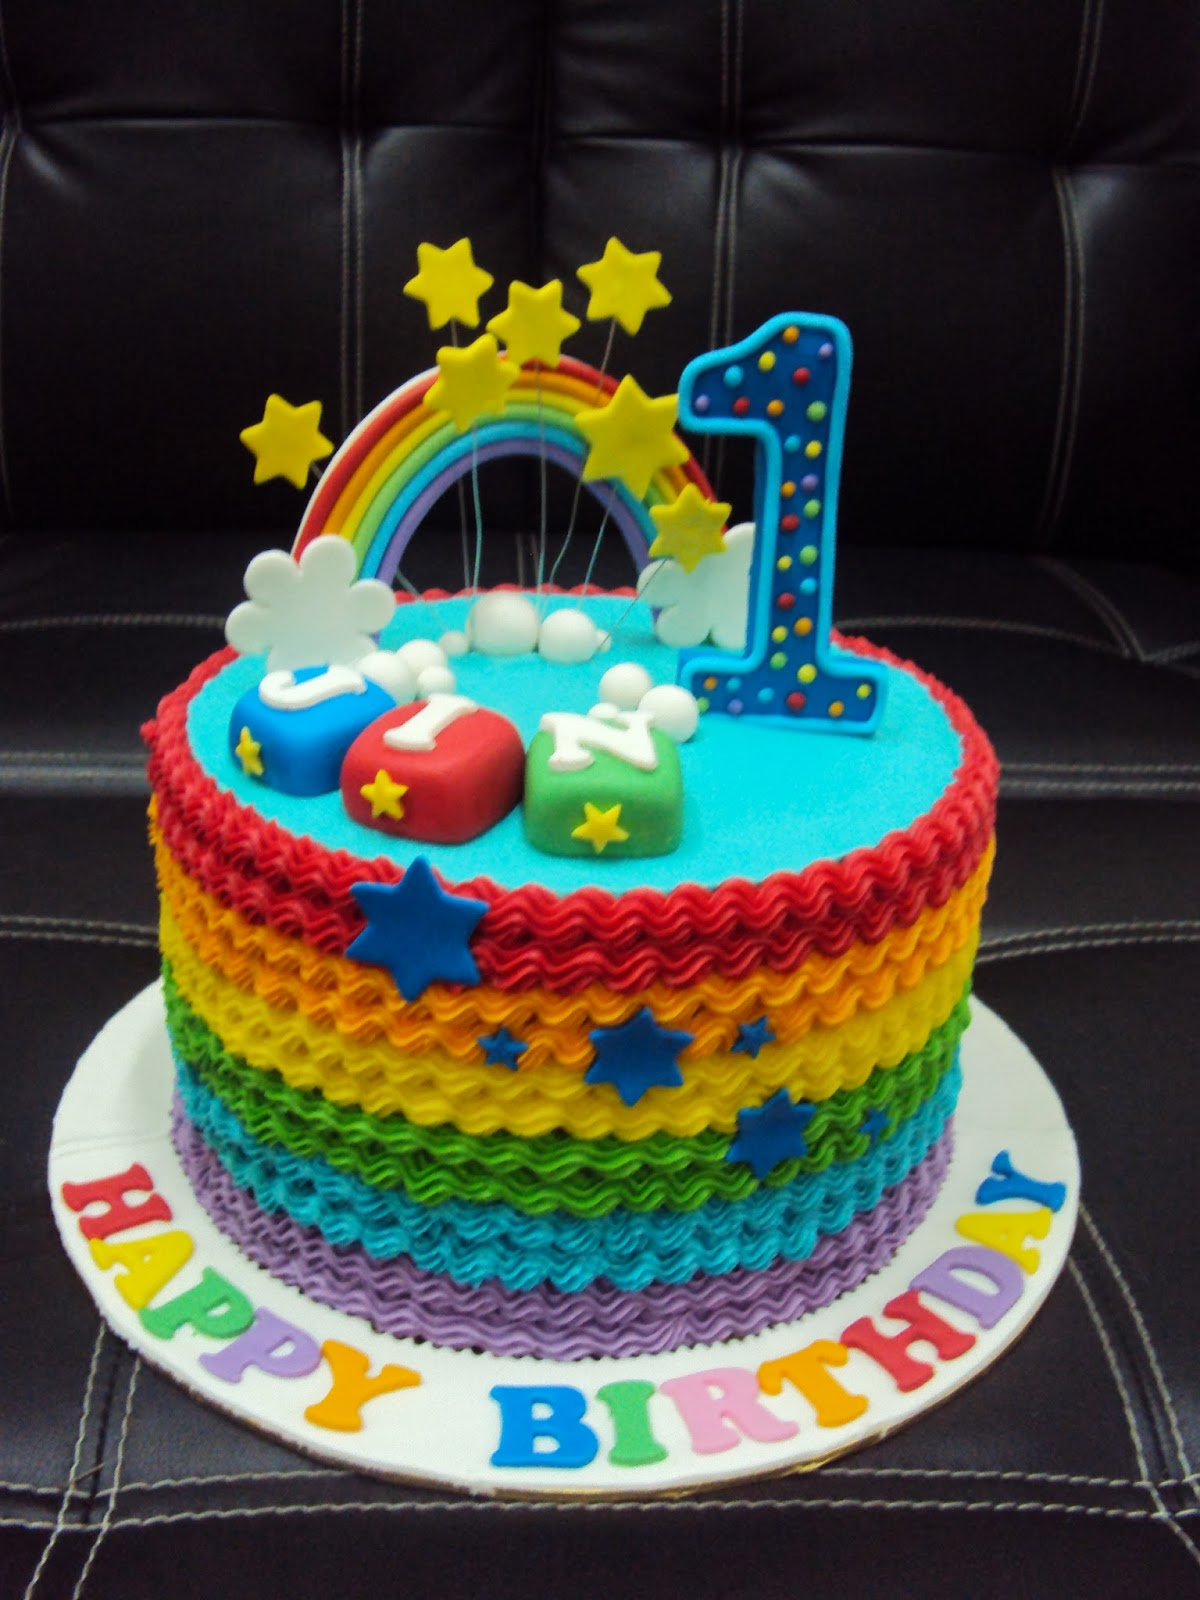 Lmis Cakes Cupcakes Ipoh Contact 012 5991233